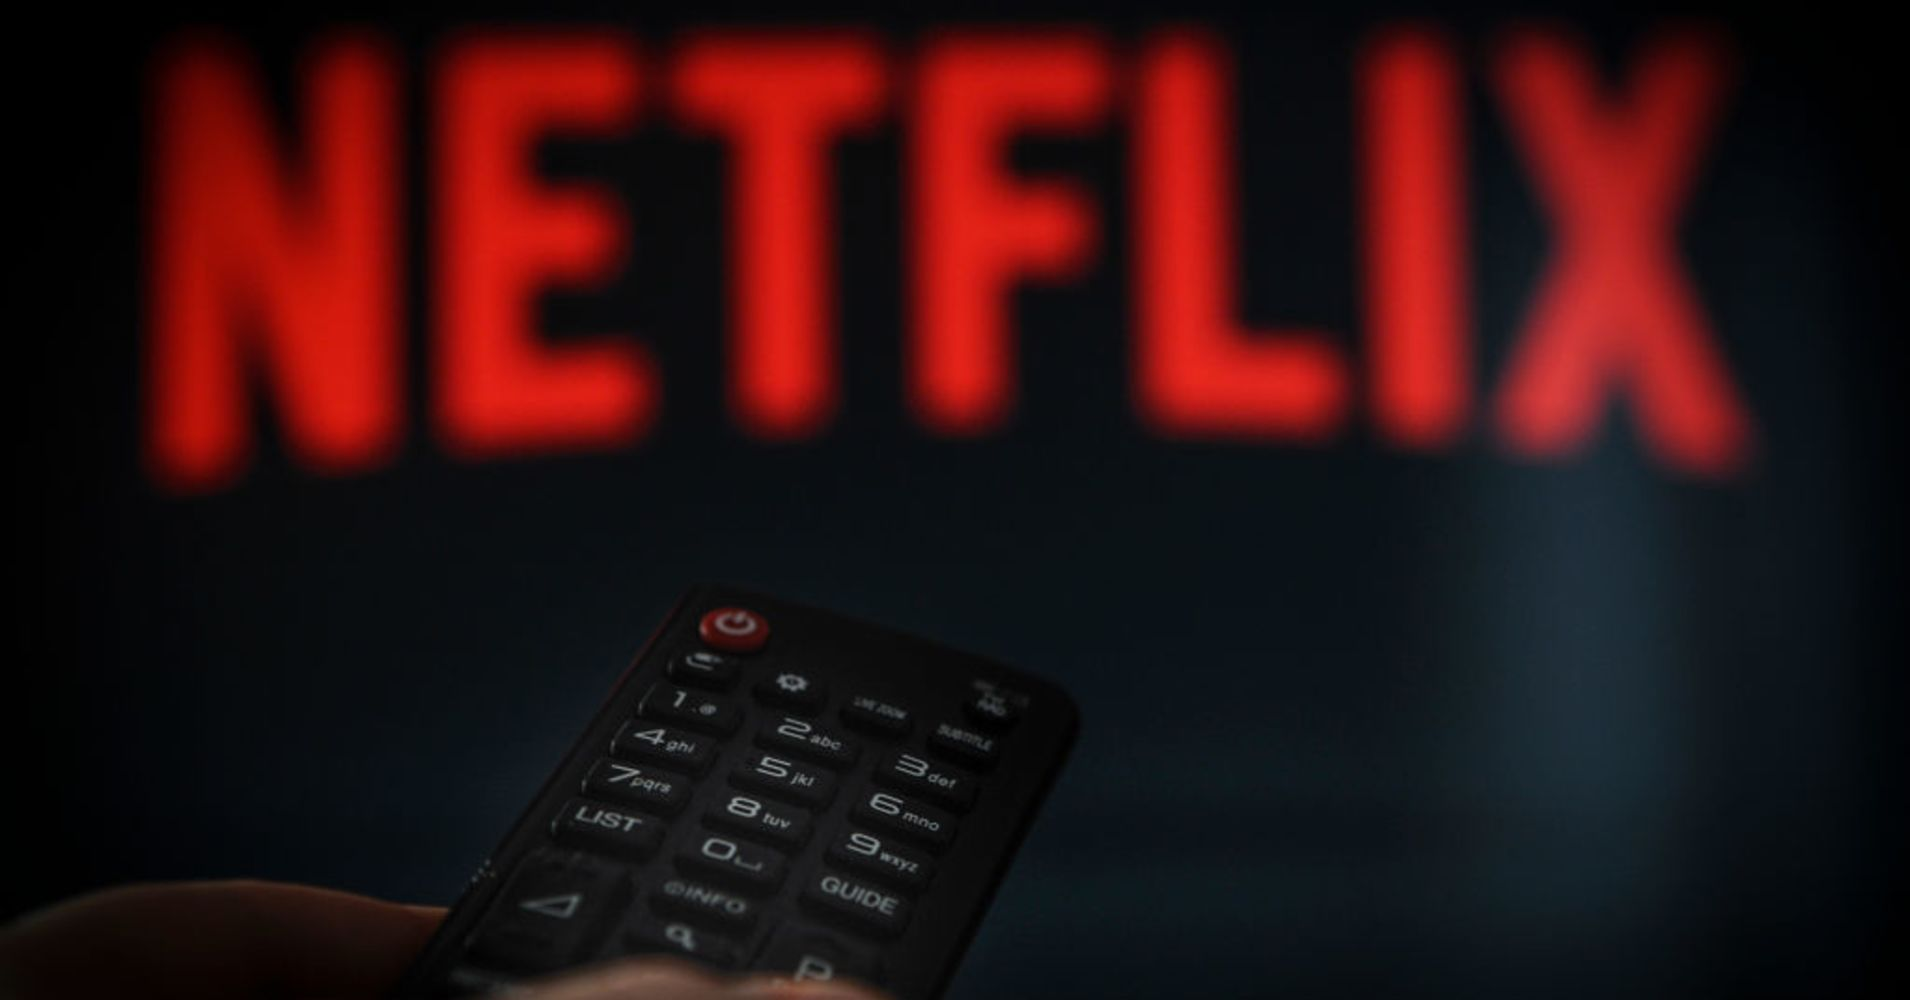 India, not China, to take center stage in Netflix's expansion plan in Asia